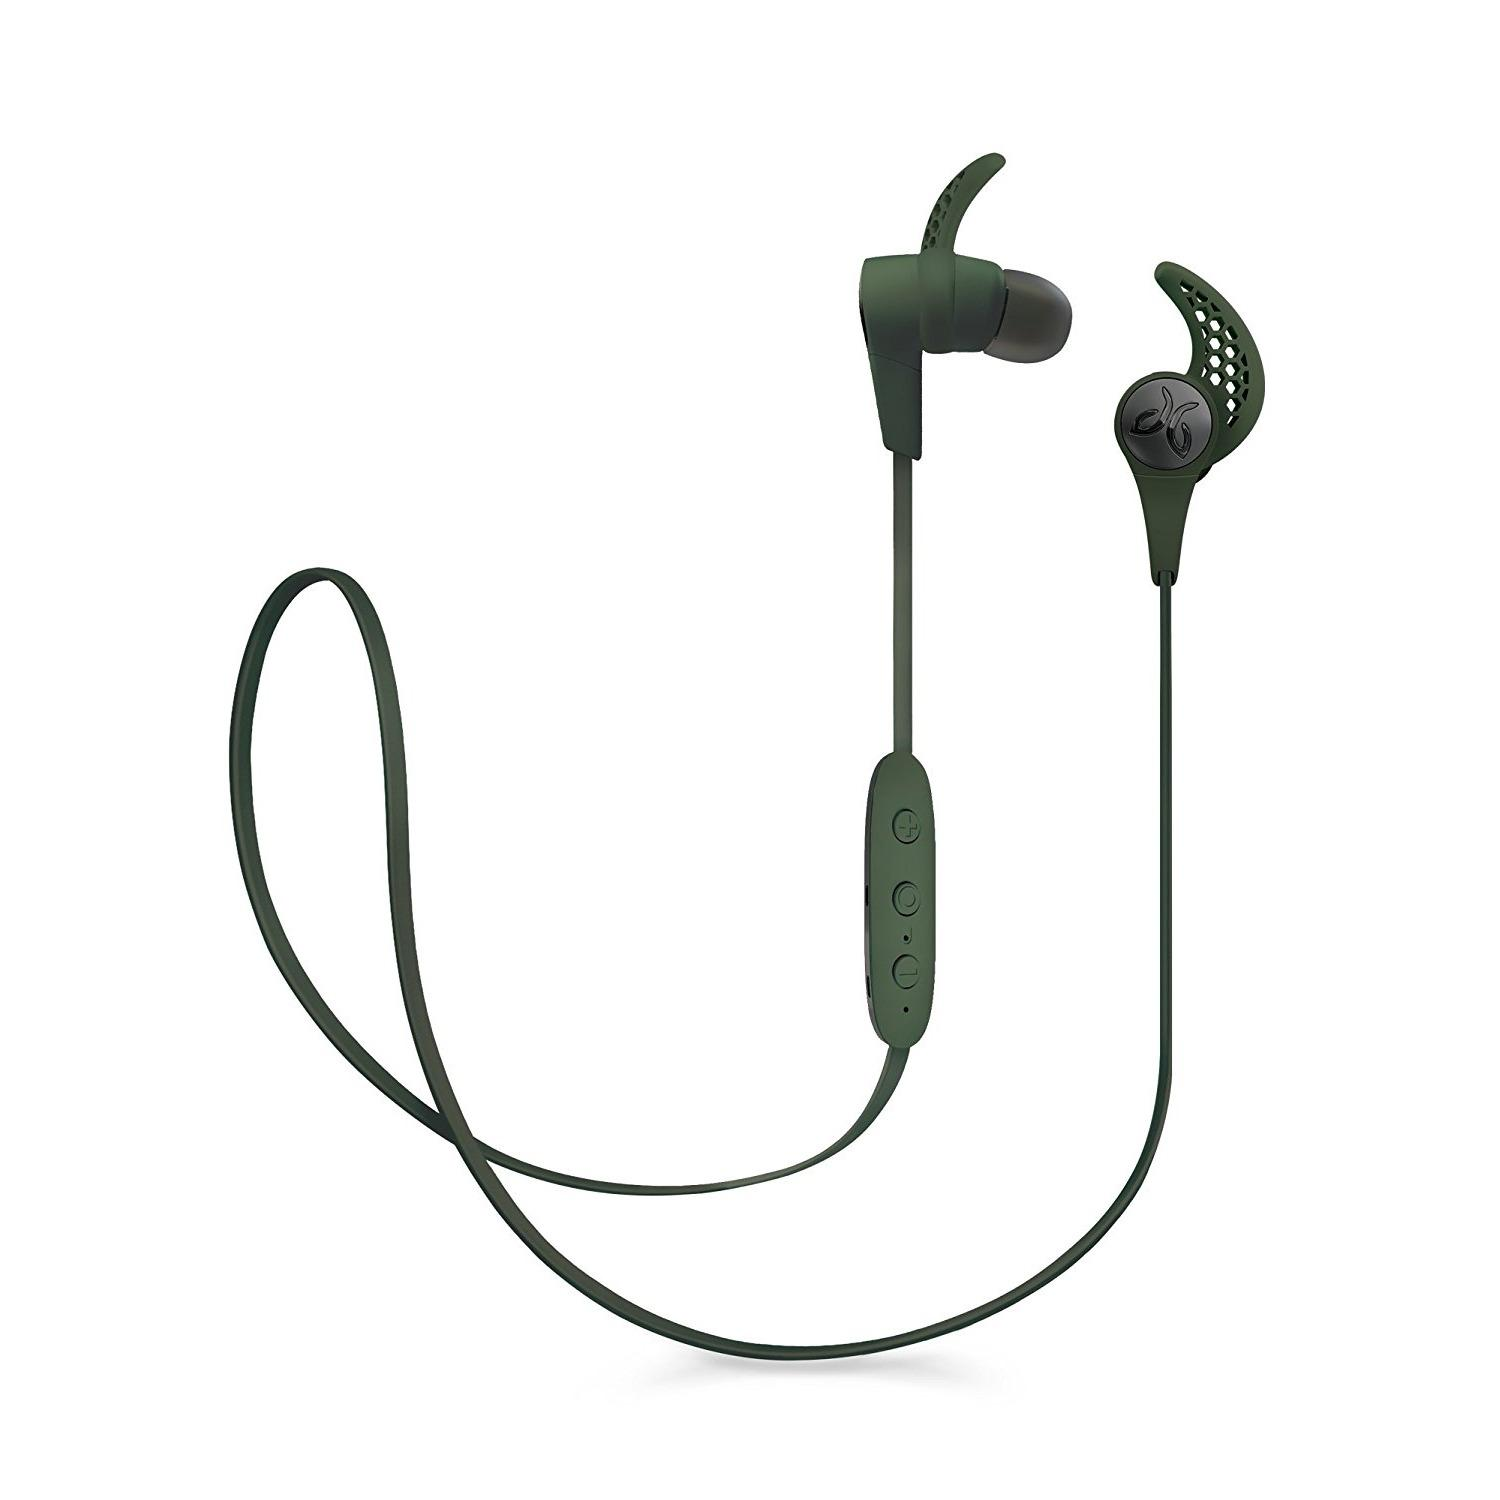 The Cheapest Jaybird X3 In Ear Wireless Bluetooth Sports Headphones Alpha Green Online